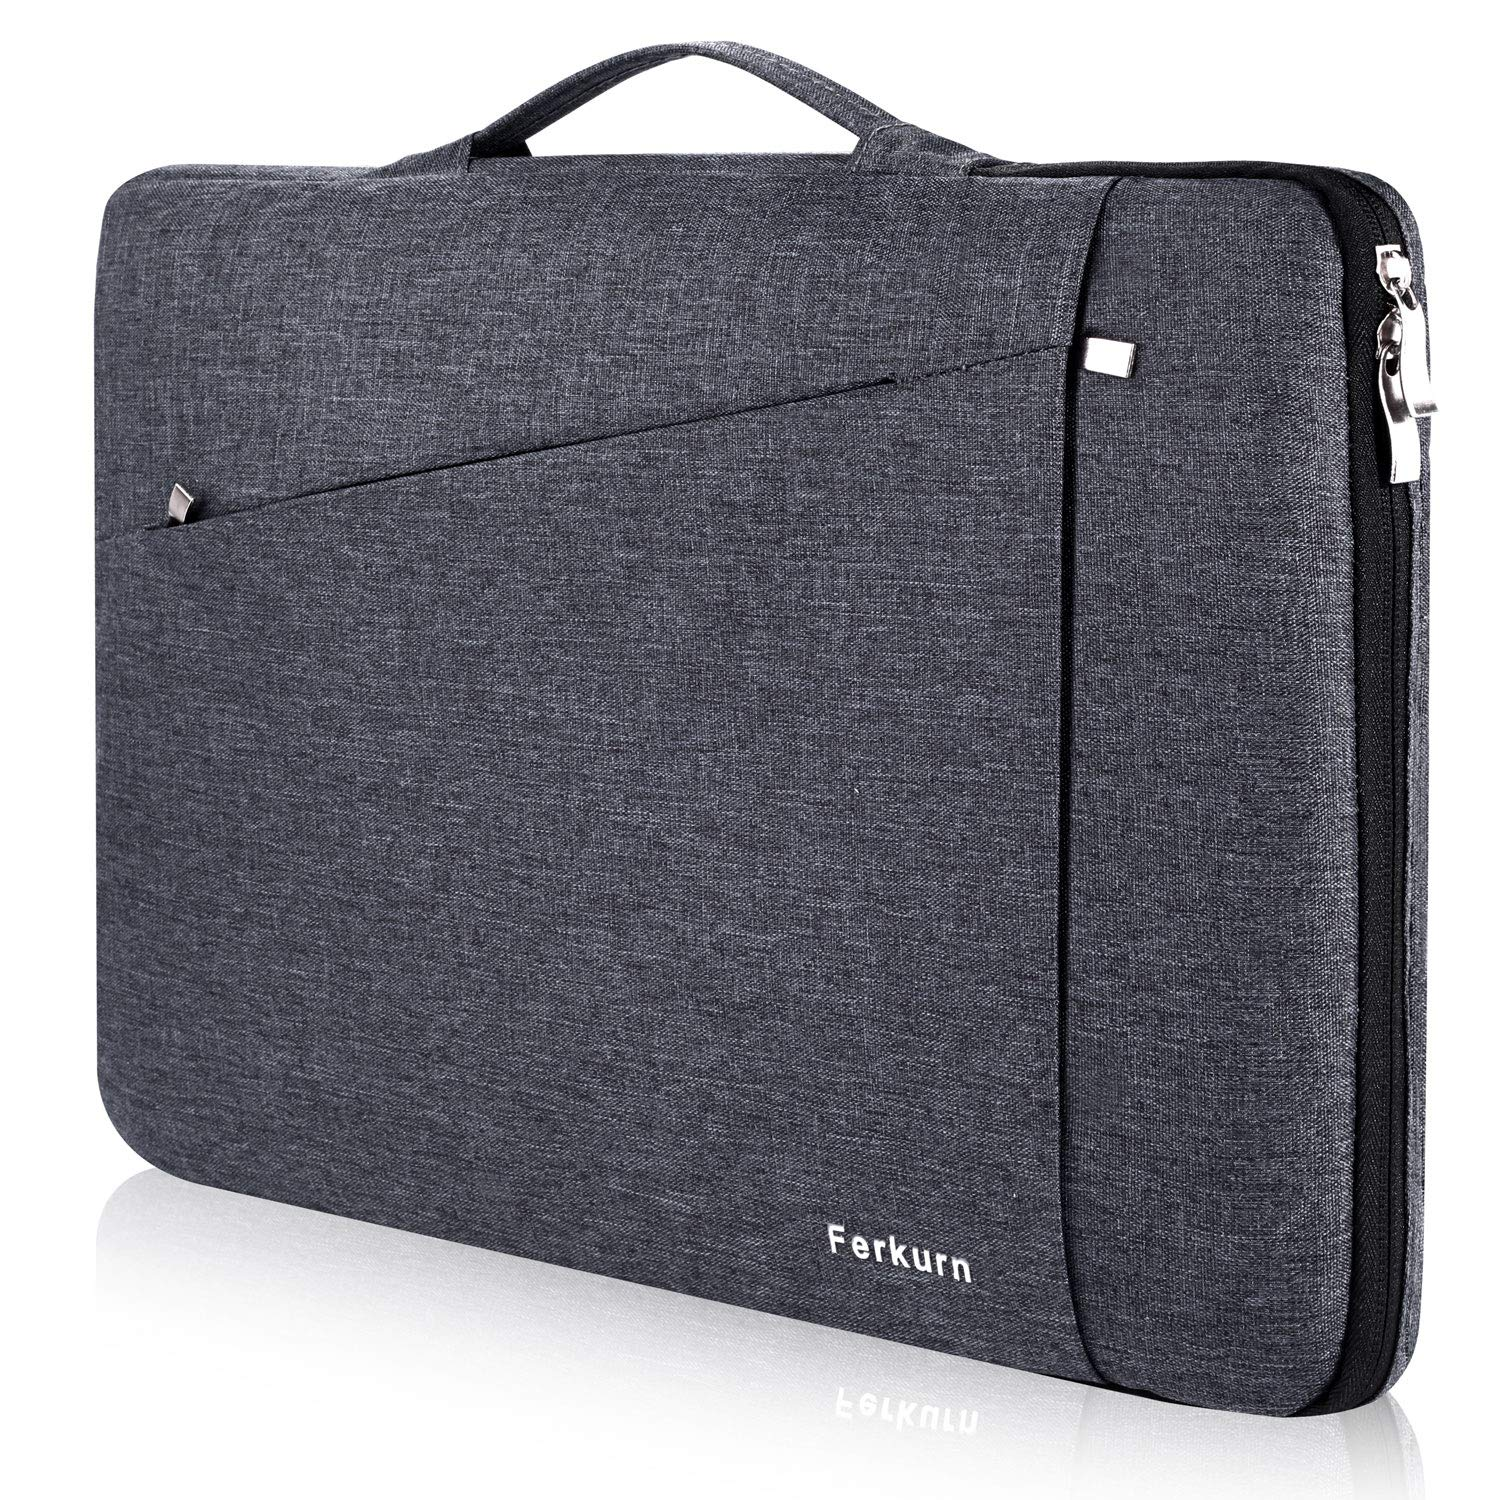 Ferkurn 13 inch 13.3 inch Laptop Sleeve with Handle Compatible MacBook air 13.3,MacBook pro 13,Dell XPS, HP, Surface Laptop, iPad Pro 12.9, Waterproof Laptop Case Bag-Grey